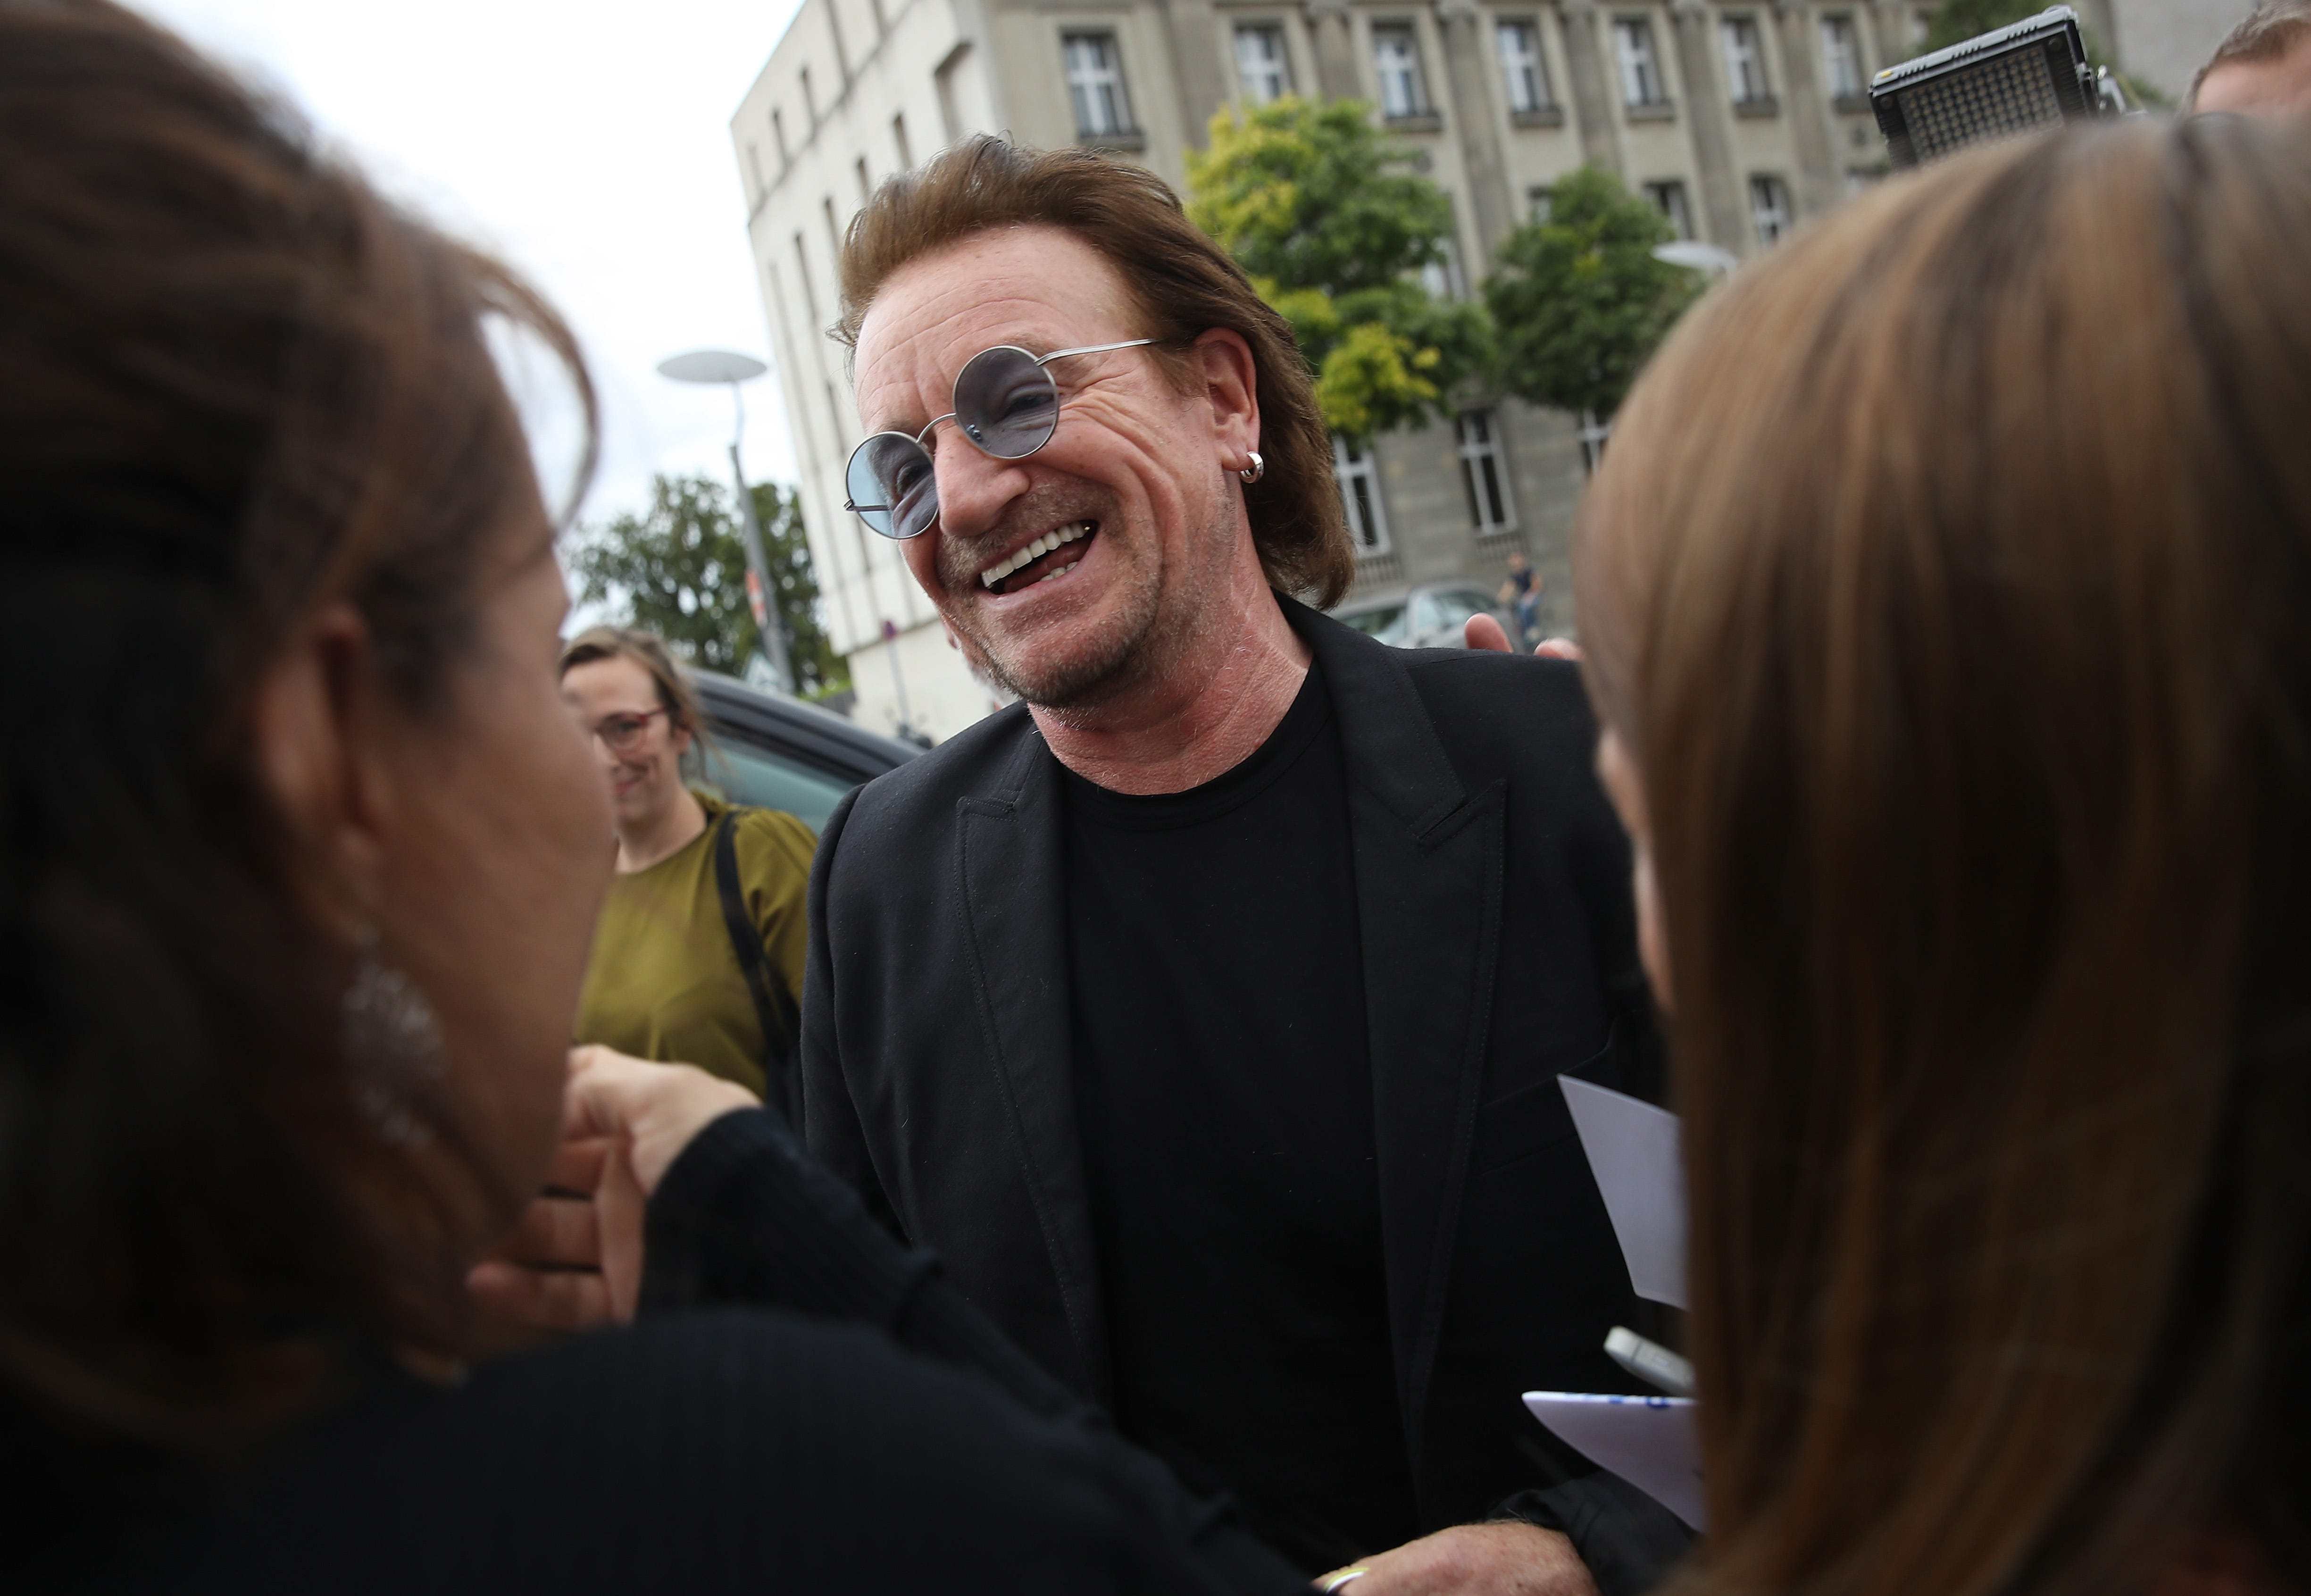 U2 ends Berlin concert early after Bono loses voice